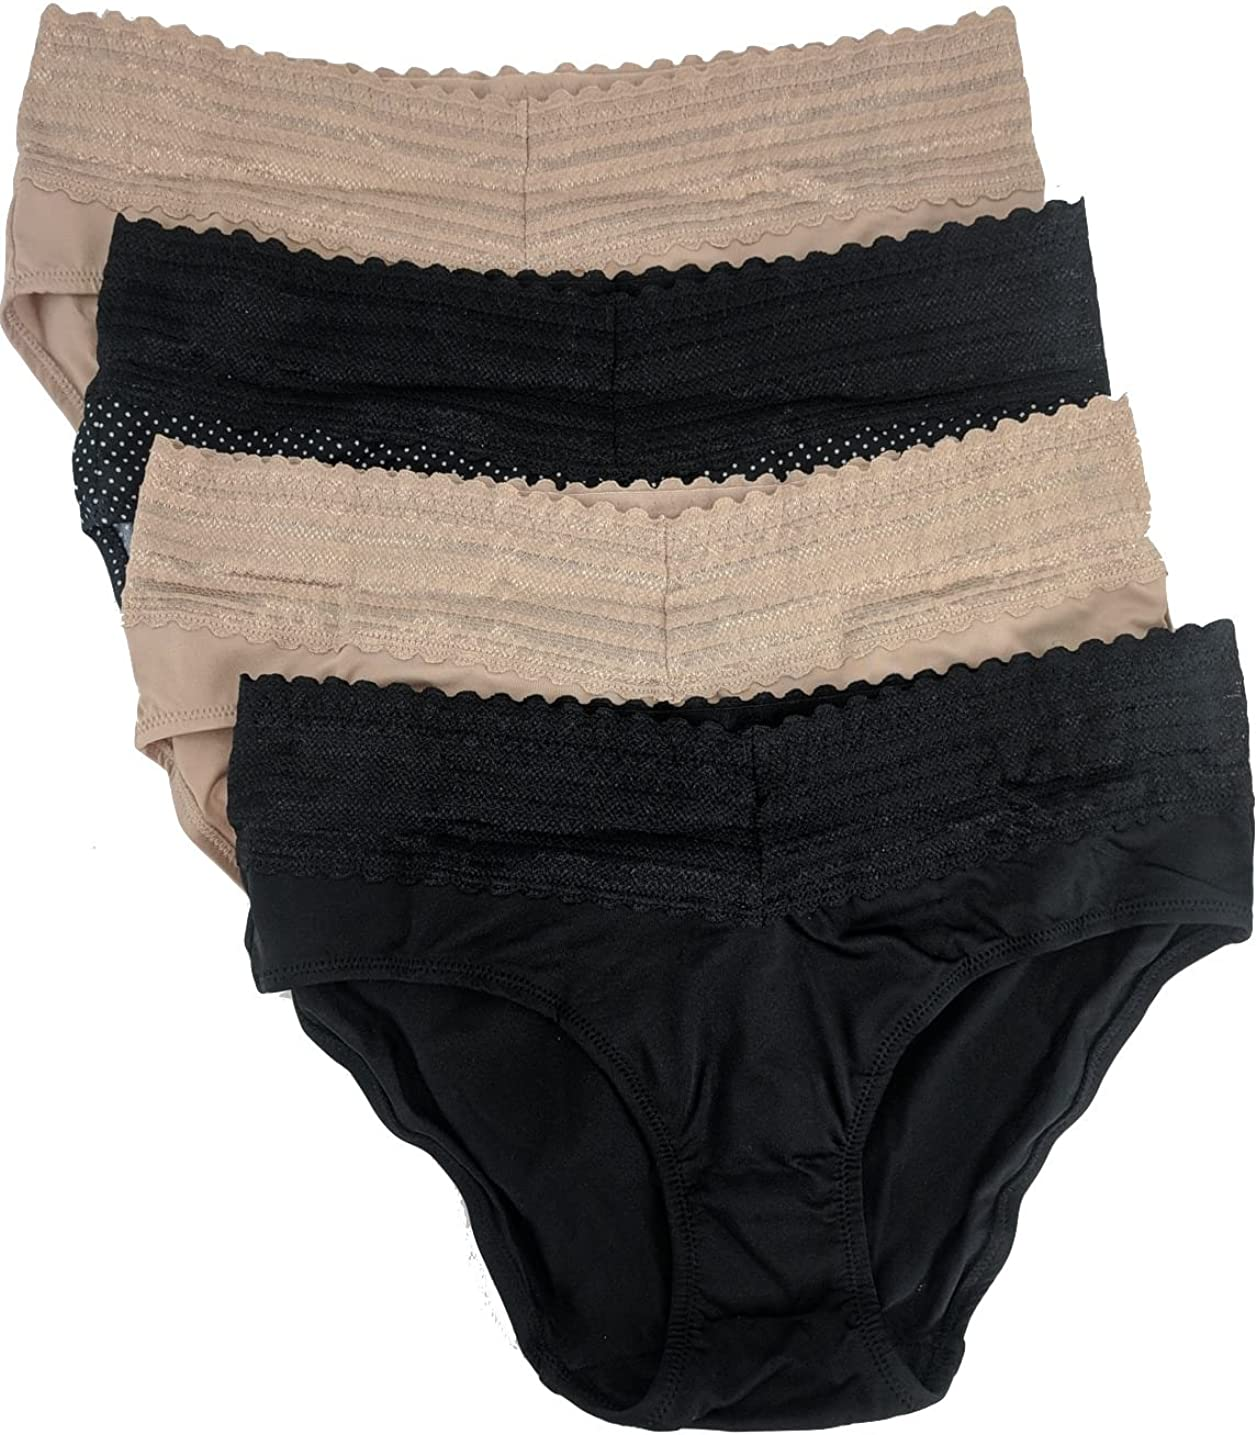 Warner's Women's No Pinches No Problems Hipster Panty 4-Pack at  Women's Clothing store